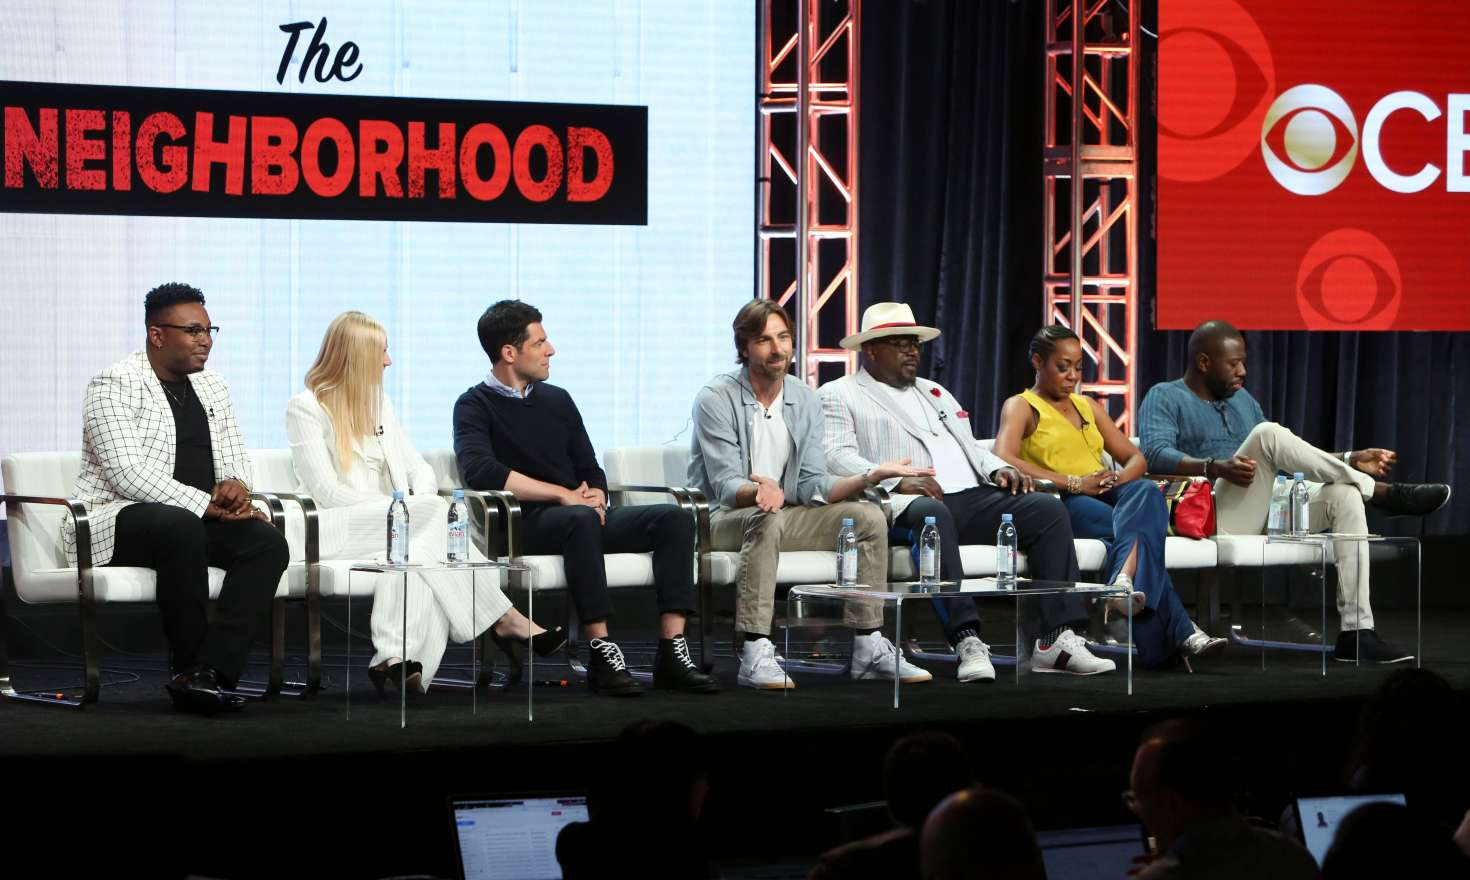 Beth Behrs 2018 : Beth Behrs: The Neighborhood Panel at 2018 TCA Summer Press Tour -04